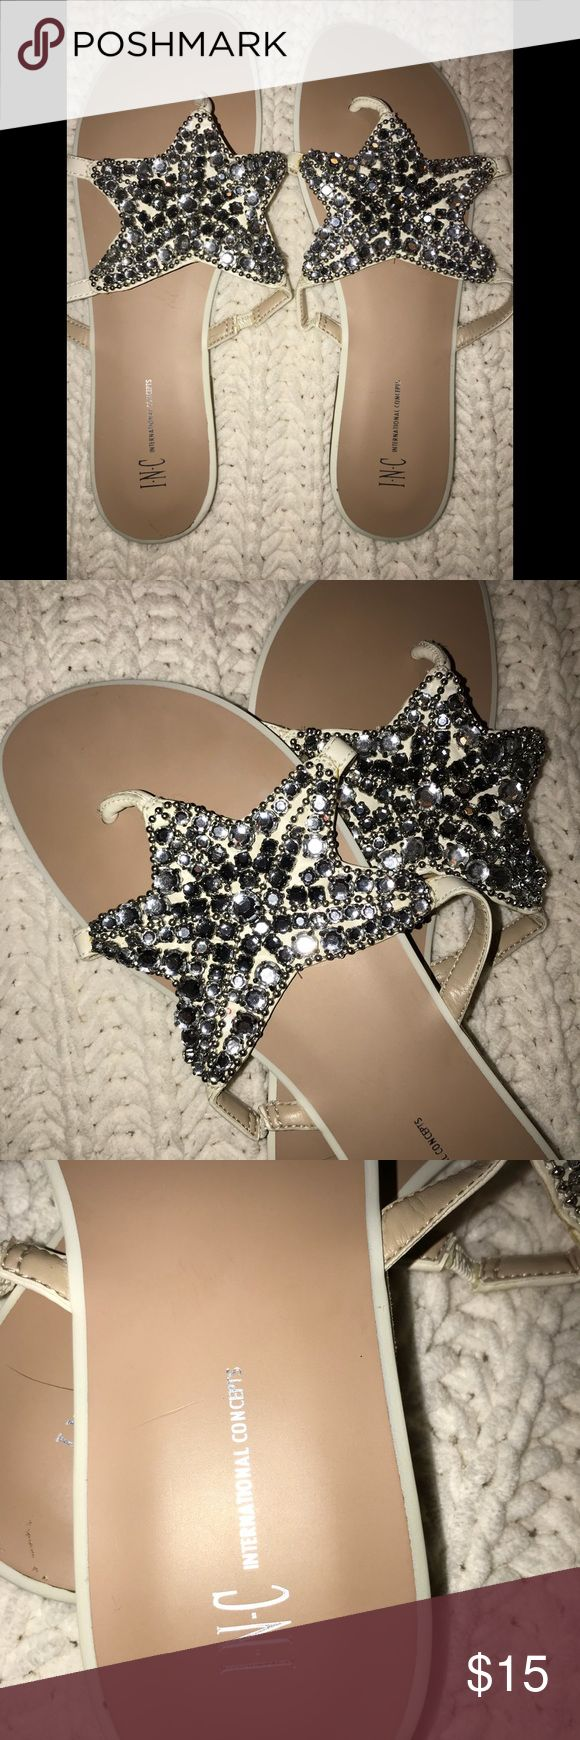 INC international bling sandal INC international bling sandal. Cream color with silver star studded design. No missing stones. Worn once. Bought on posh but too small for me so hoping someone can enjoy these gorgeous sandals. Size 8.5. Stunning and very clean. Footbed is spotless bottom has one use only. INC International Concepts Shoes Sandals